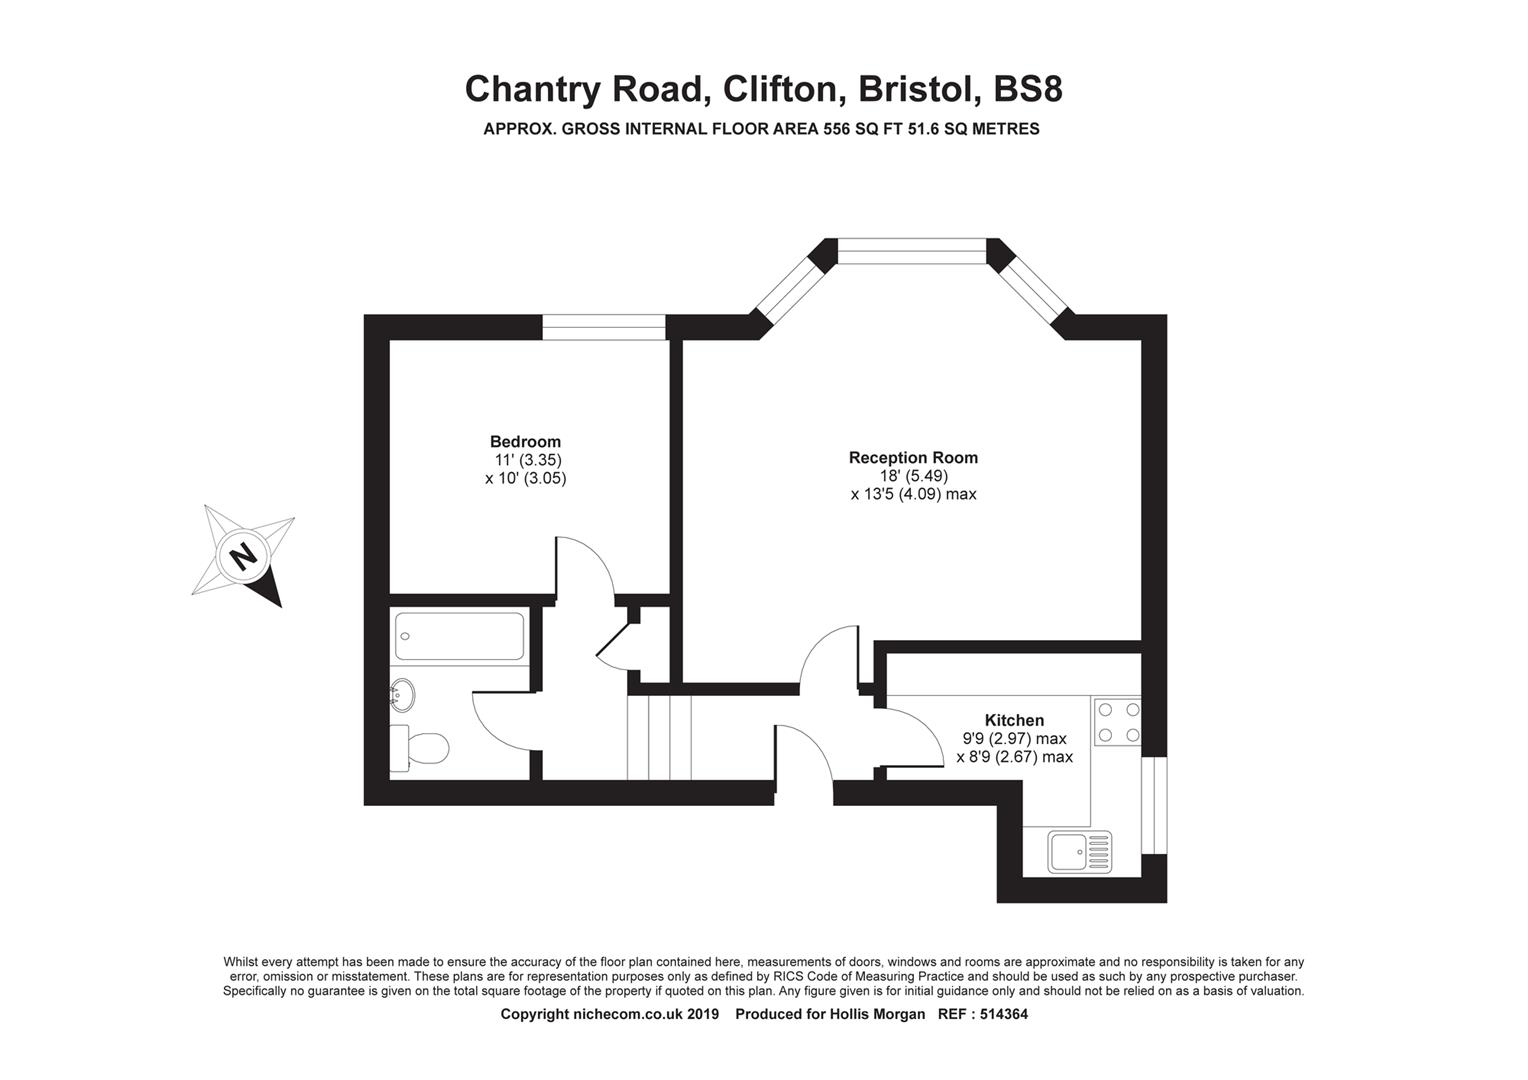 Floorplans For Chantry Road, Clifton